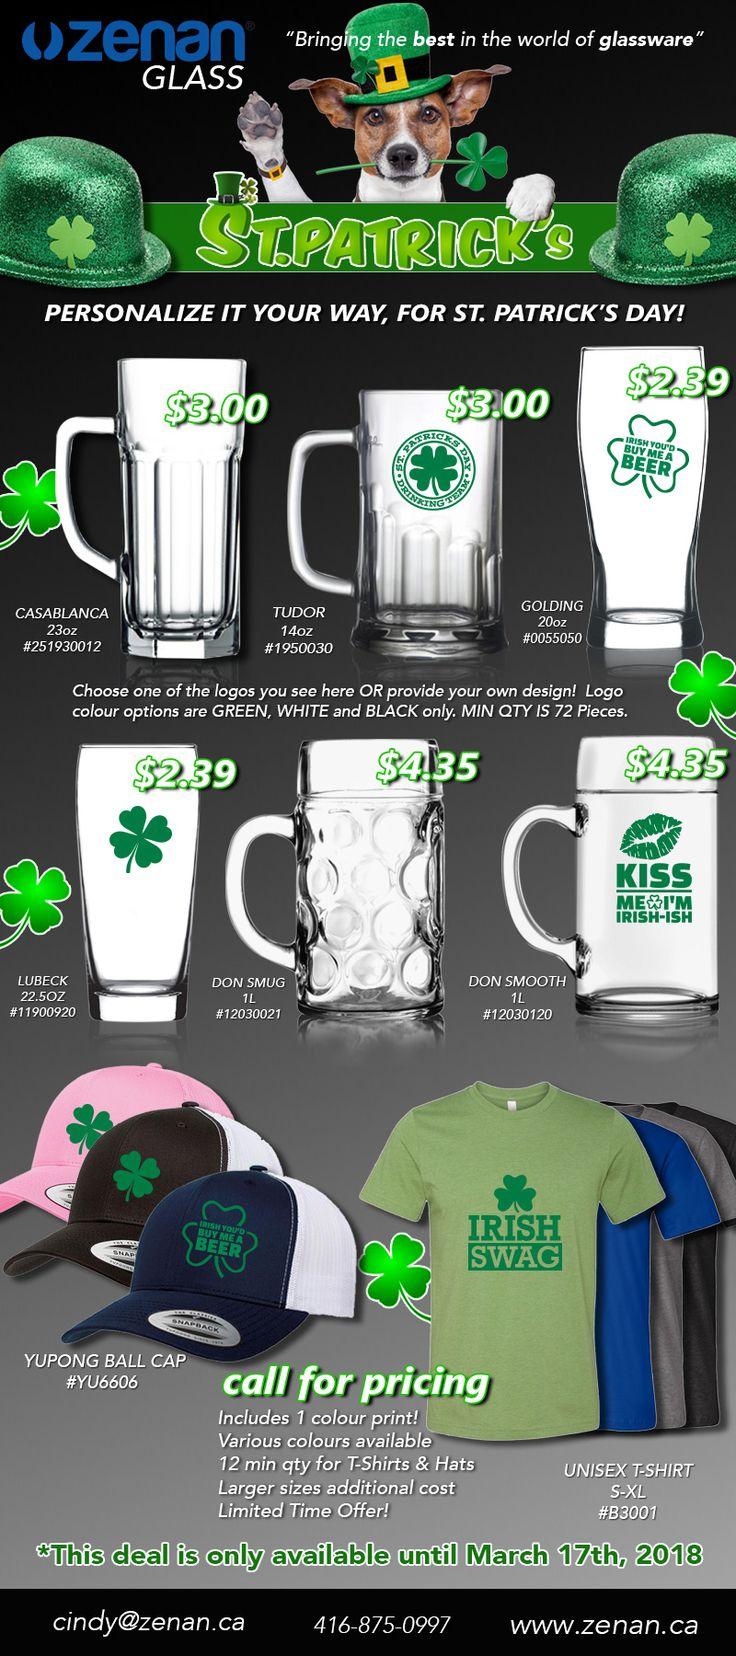 When it comes to celebrations at bars and restaurants, one of the  biggest bar days of the year is almost here! That's right, St Patrick's Day. Let us help you boost sales & increase customer experience with branded mugs, glasses &swag! Don't wait, be prepared!  www.zenan.ca